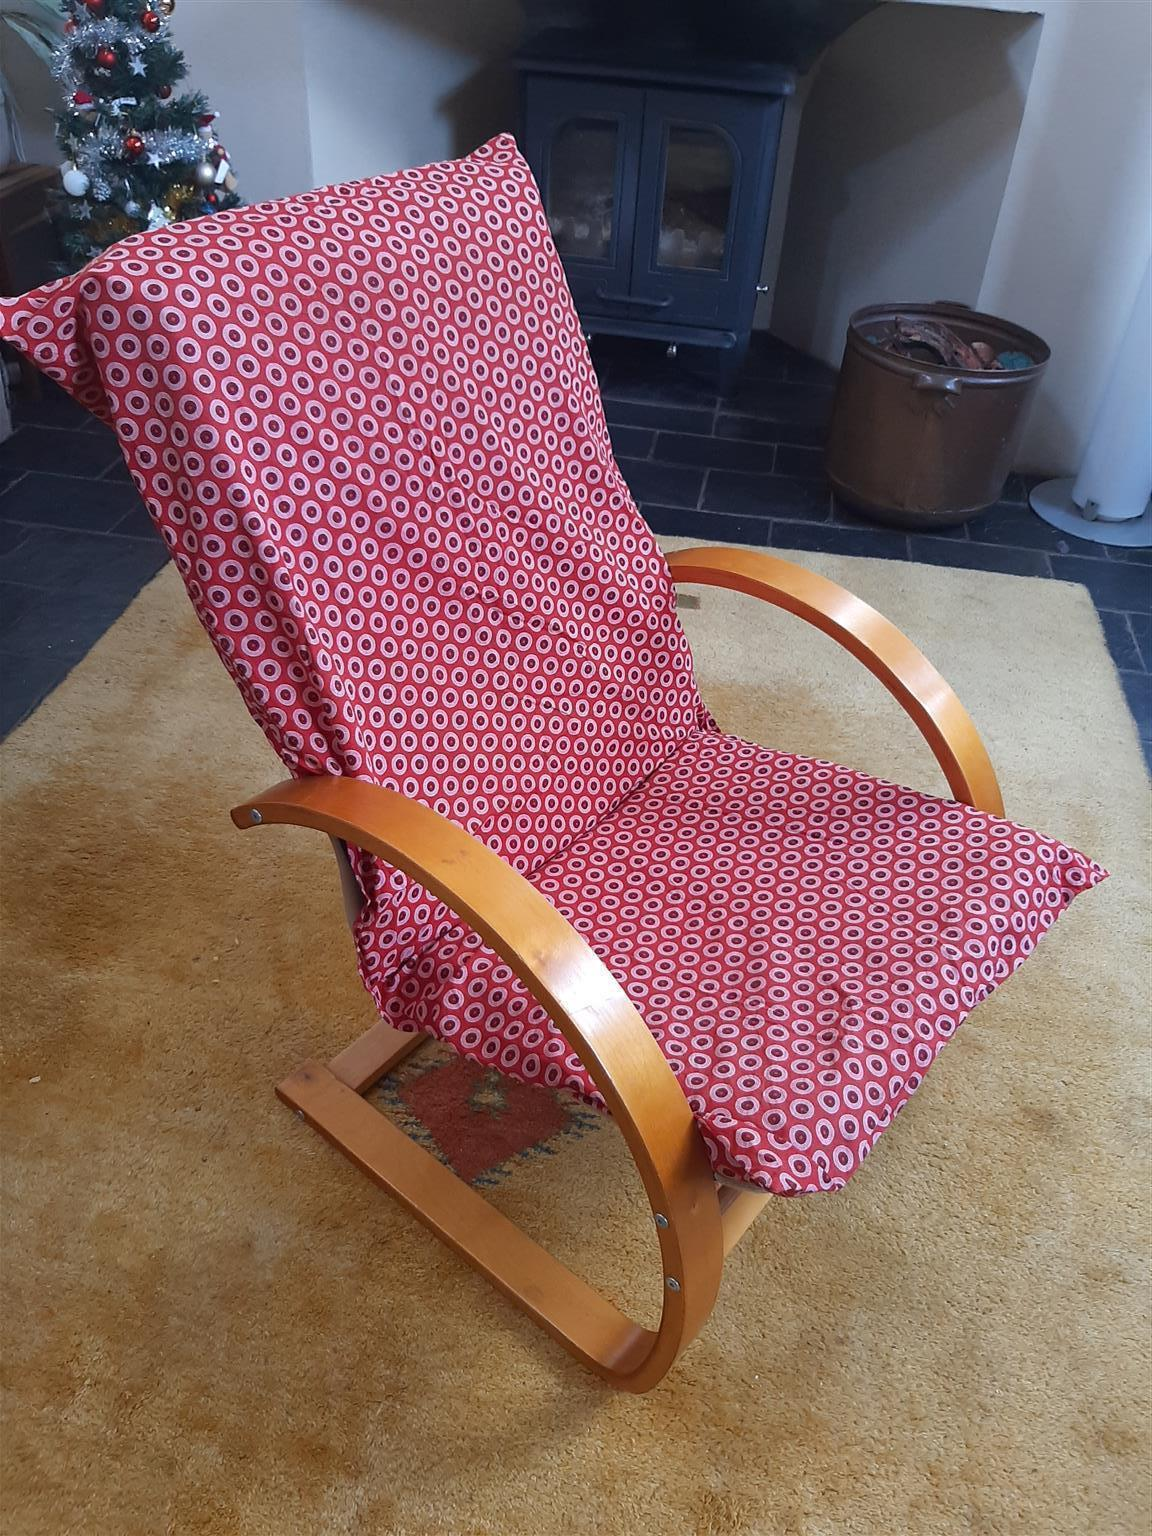 2 Bentwood laminated chairs